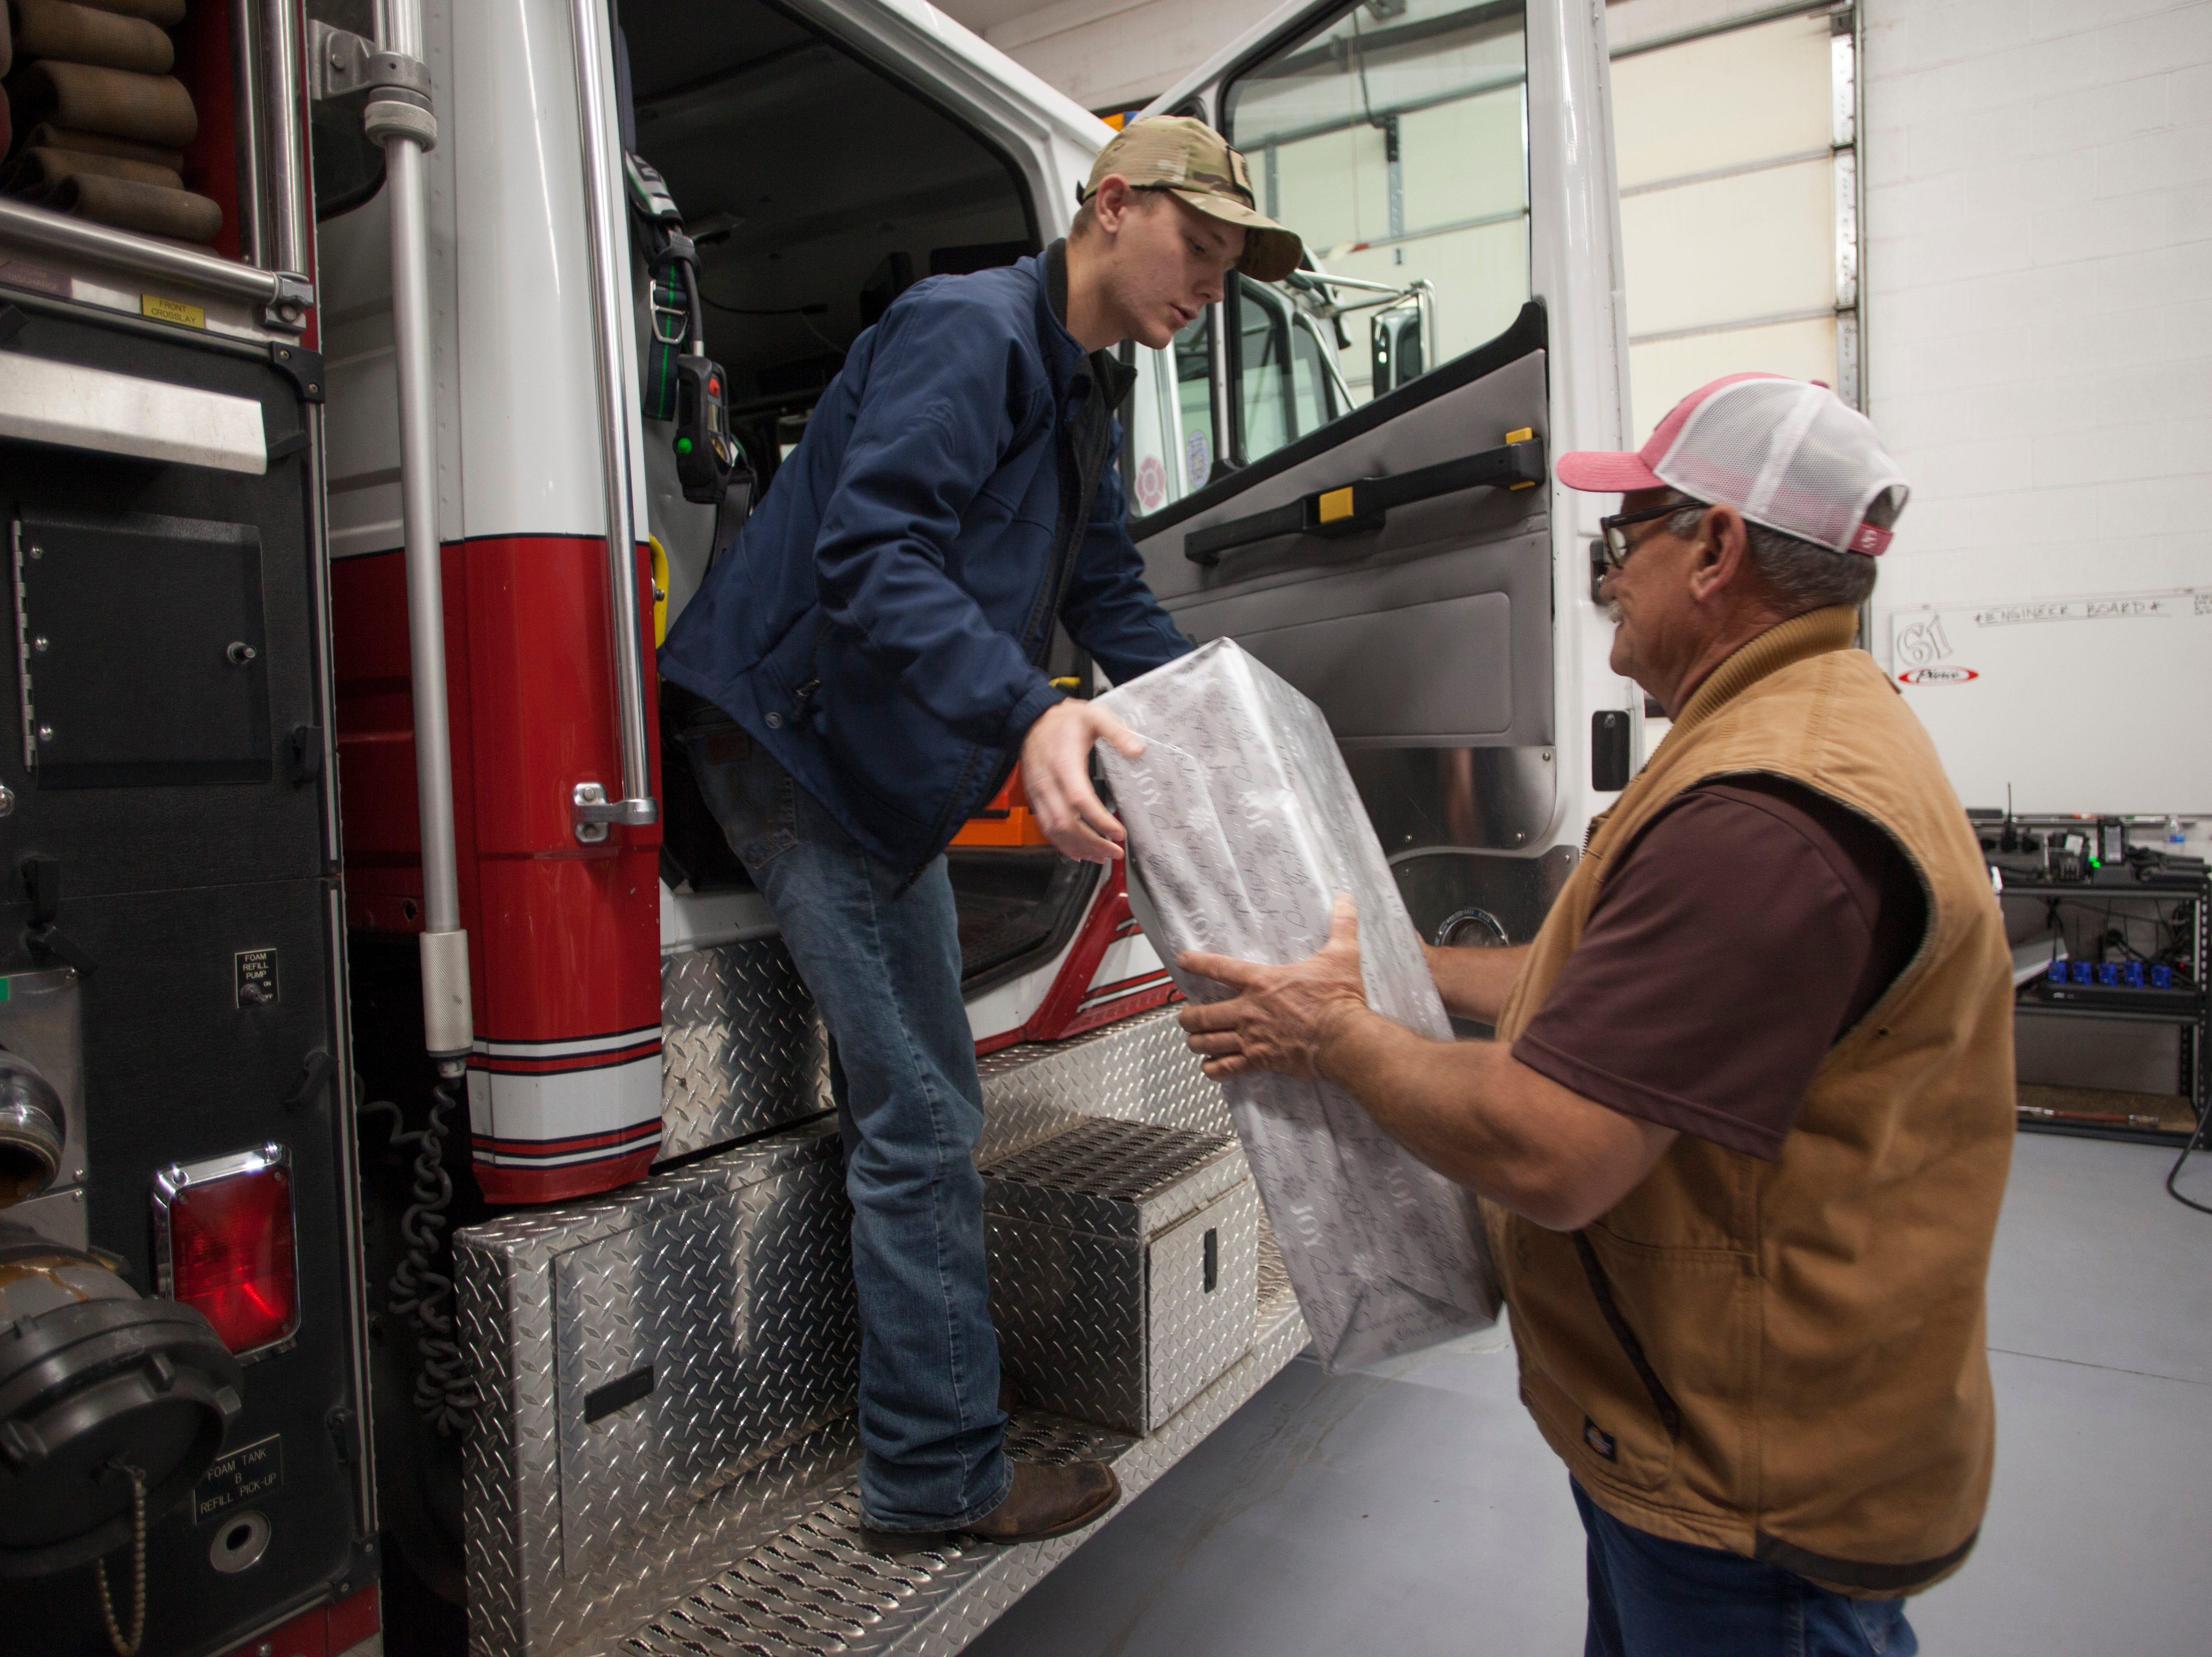 Members of the Washington Fire Department and community volunteers deliver gifts as part of the Angel Tree Project Wednesday, Dec. 19, 2018.